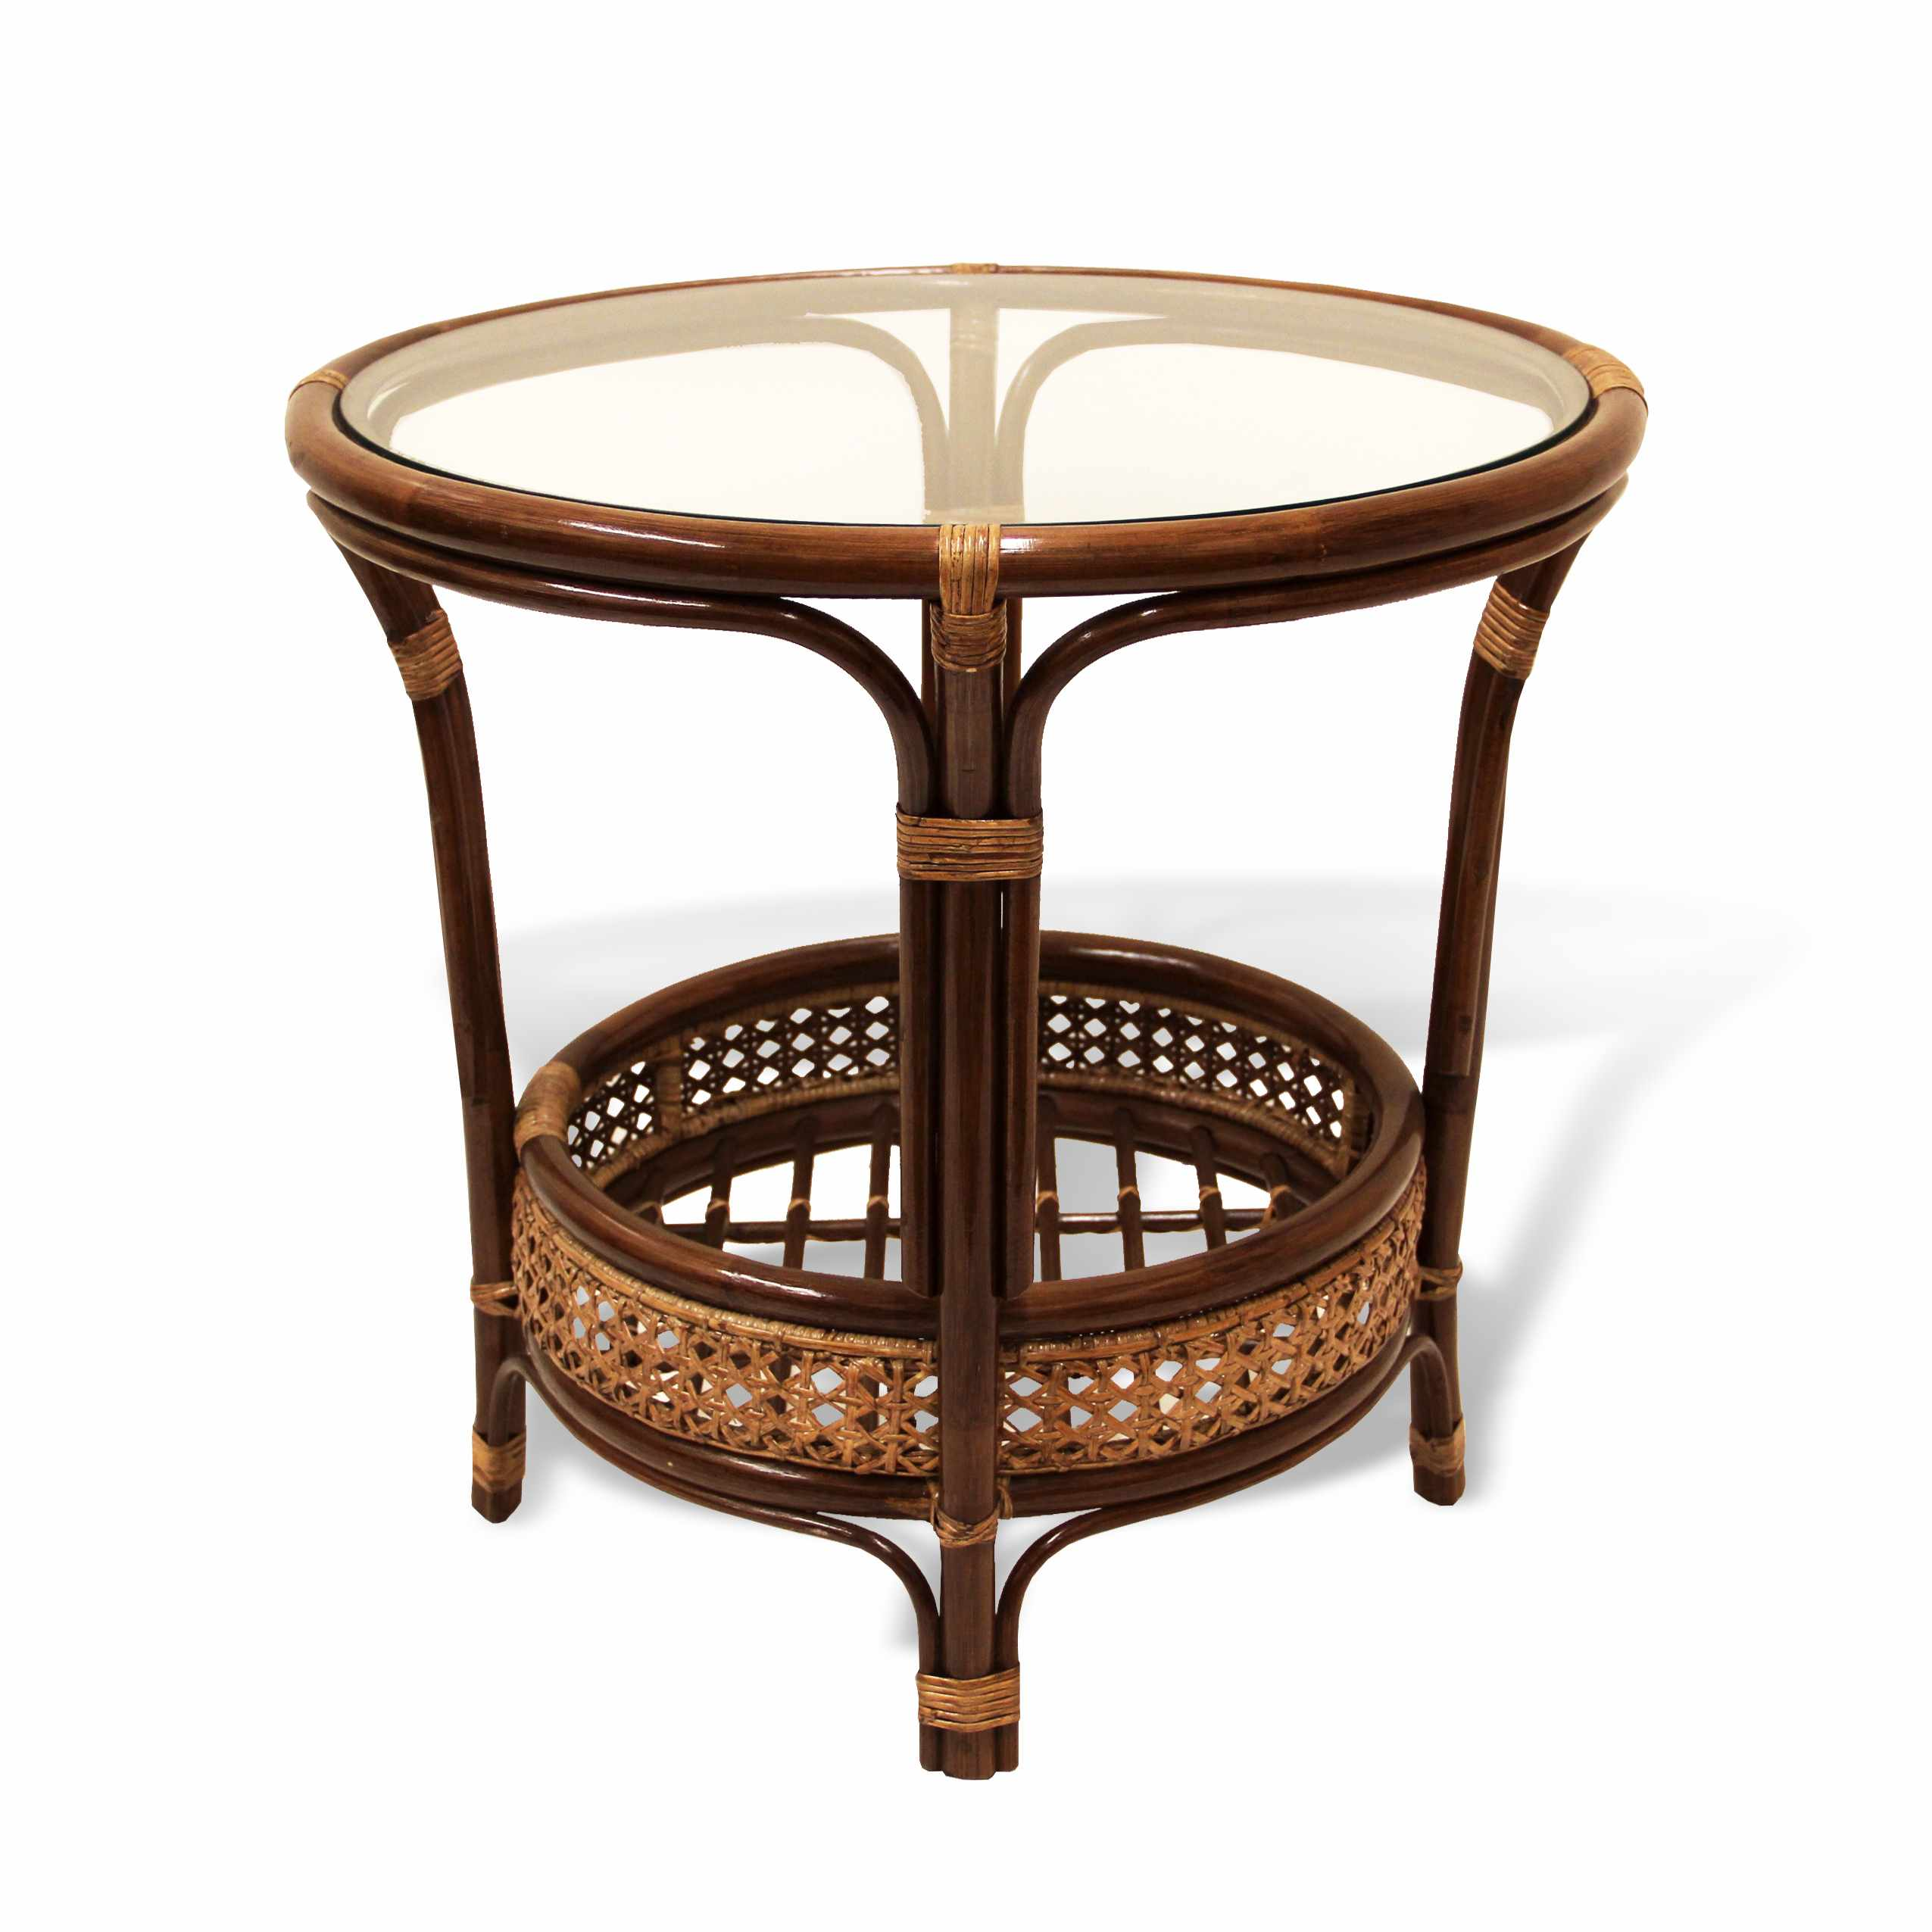 Buy Pelangi Round Coffee Table In USA, Best Price, Free